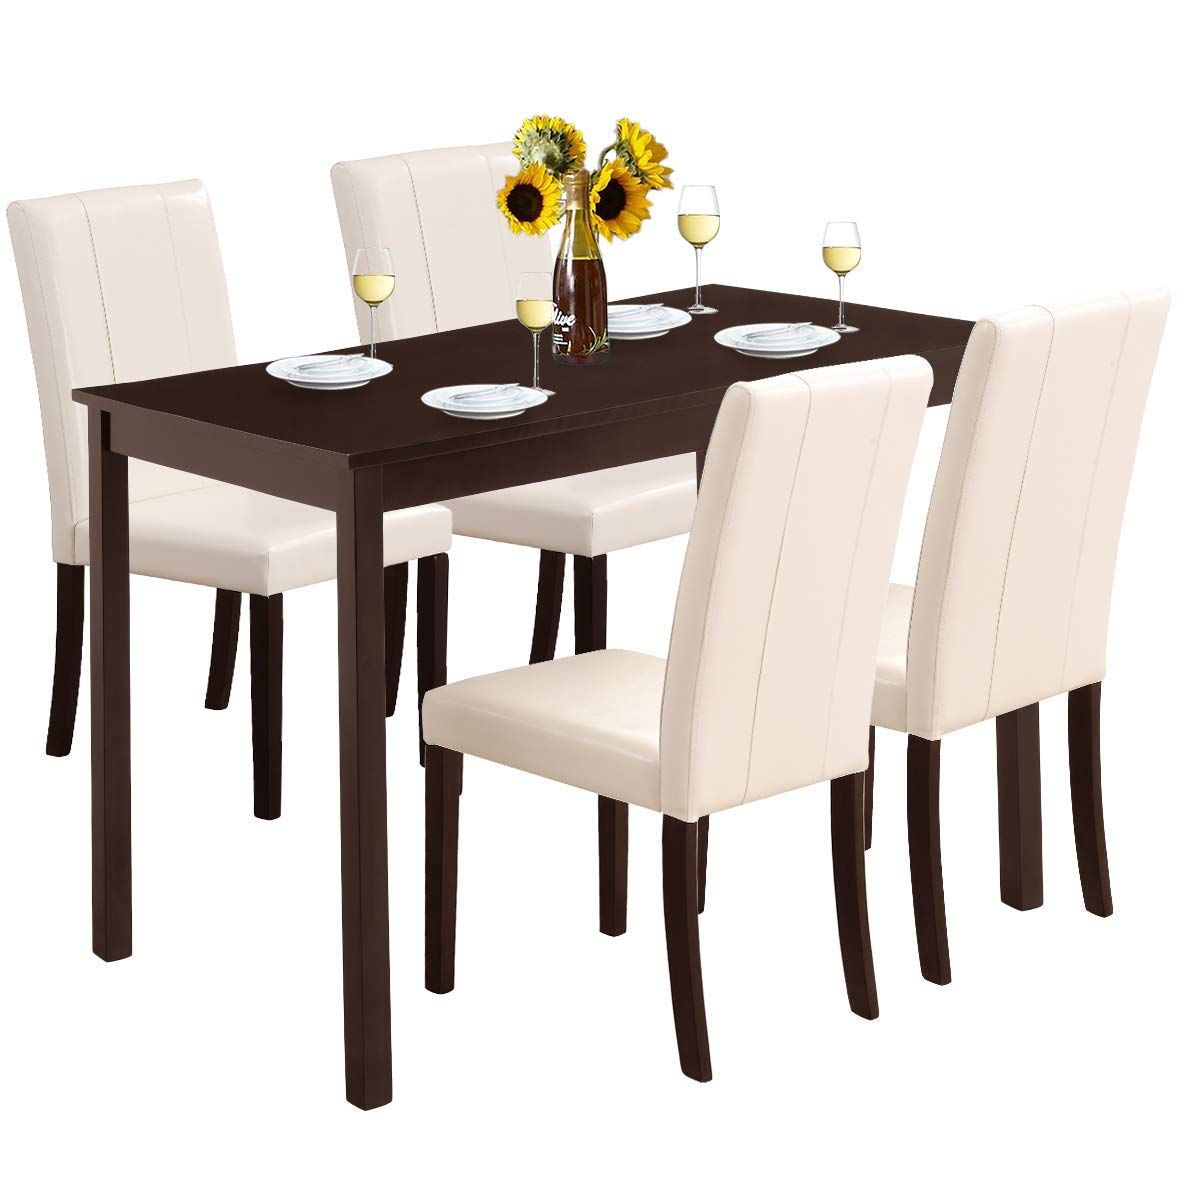 Harper Andamp Bright Designs Dining Table Set For 4 Find Out More About The Great Product Kitchen Table Settings Dinning Table Set Modern Glass Dining Table Cheap dining table and chairs set